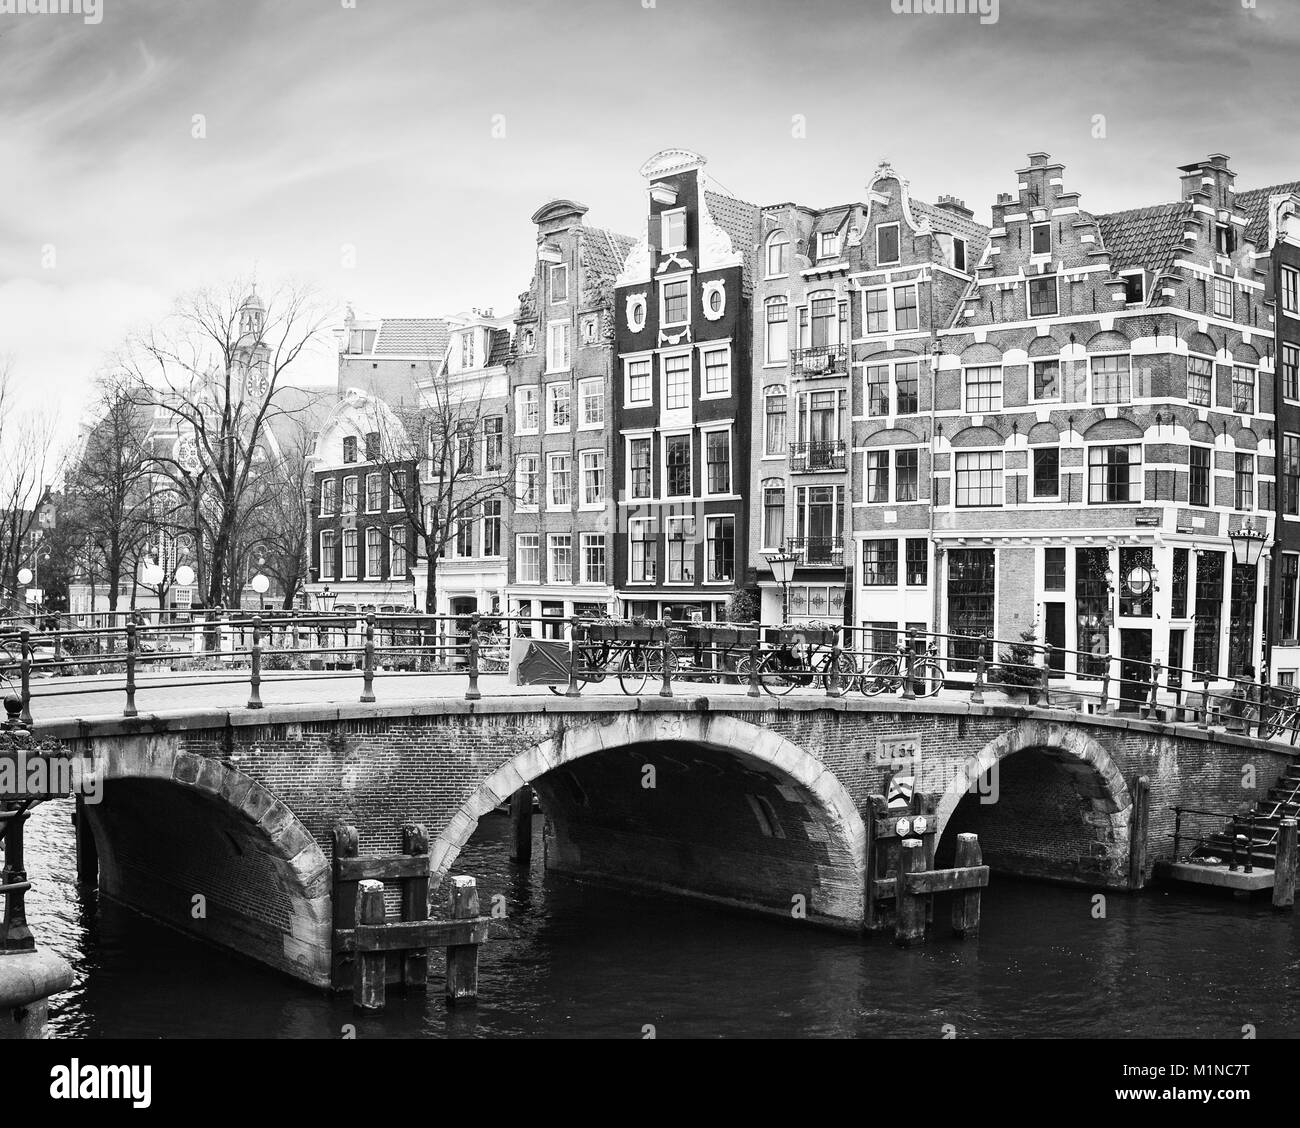 Prinsengracht Canal, Amsterdam, The Netherlands. Typical  Dutch houses  with a crow-stepped gable  behind the bridge. - Stock Image